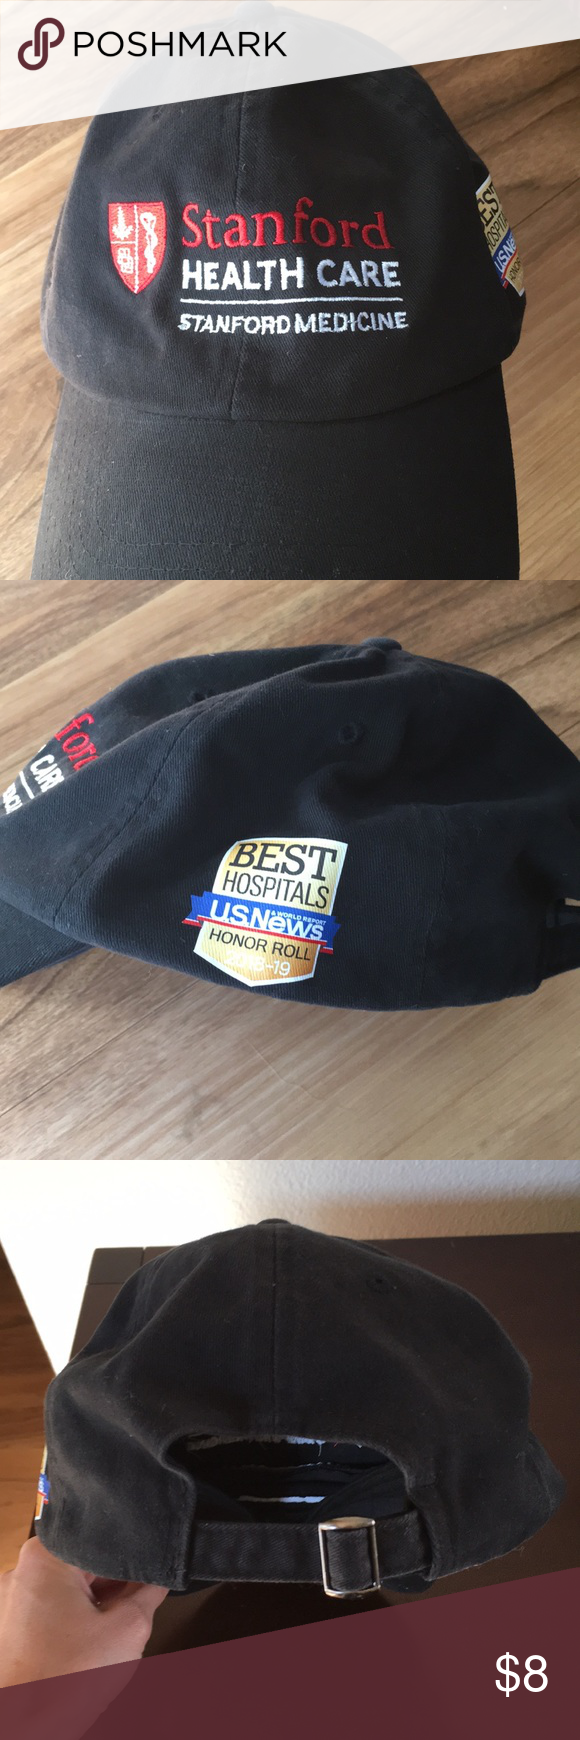 Stanford Healthcare Best Hospital ballcap New without tag